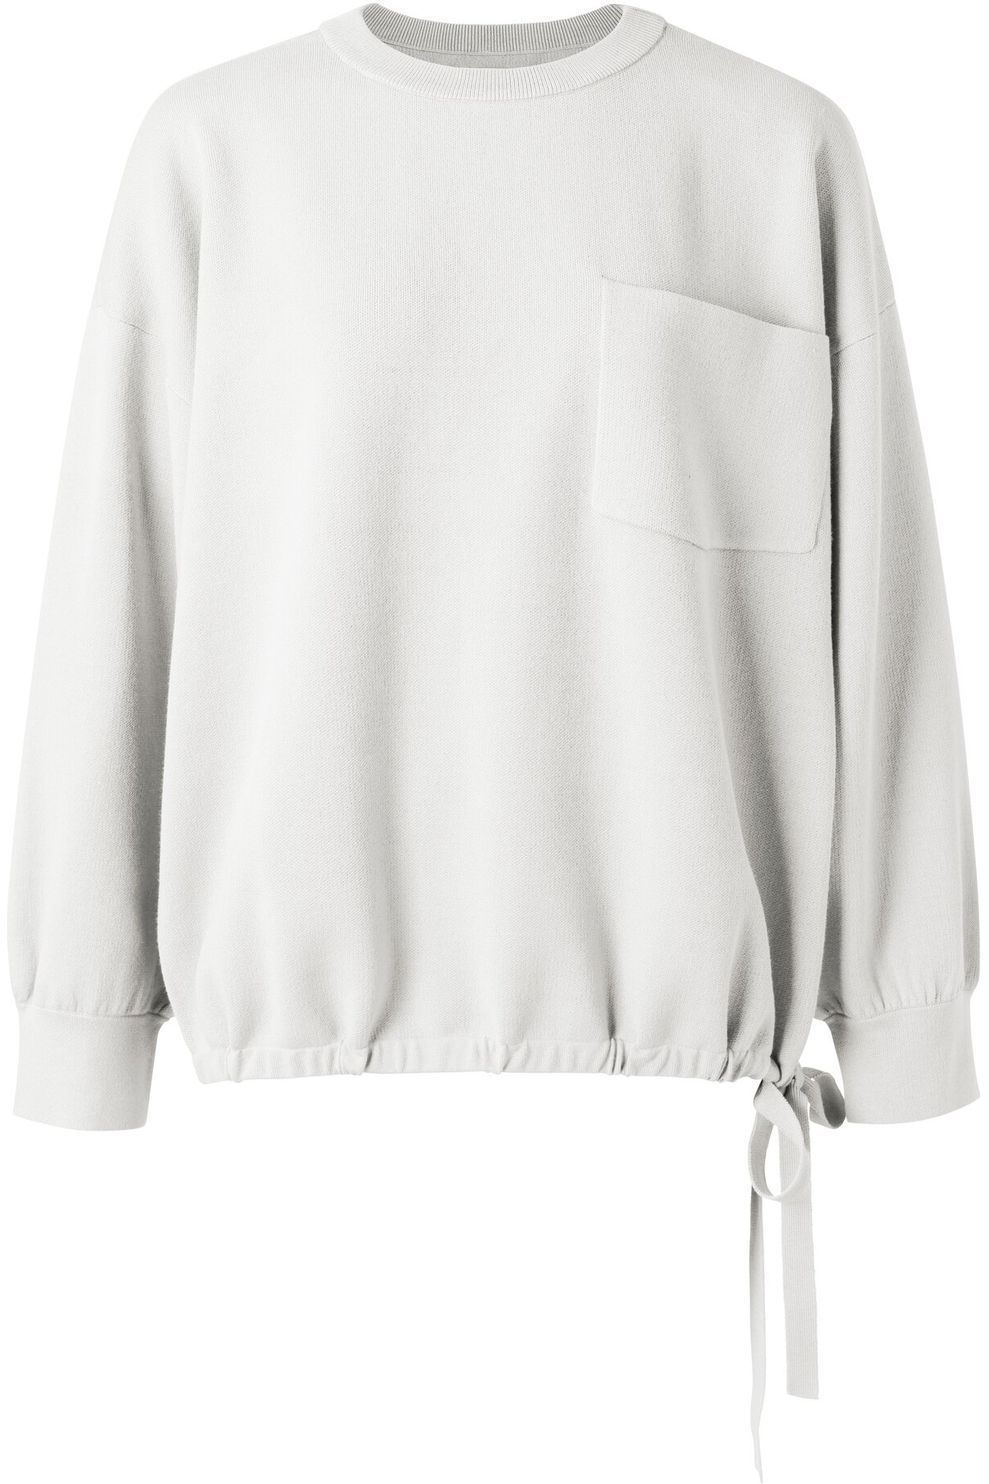 YAYA Trui Boxy With Pocket And Drawstring voor dames - Wit - Maten: 1, 2, 3